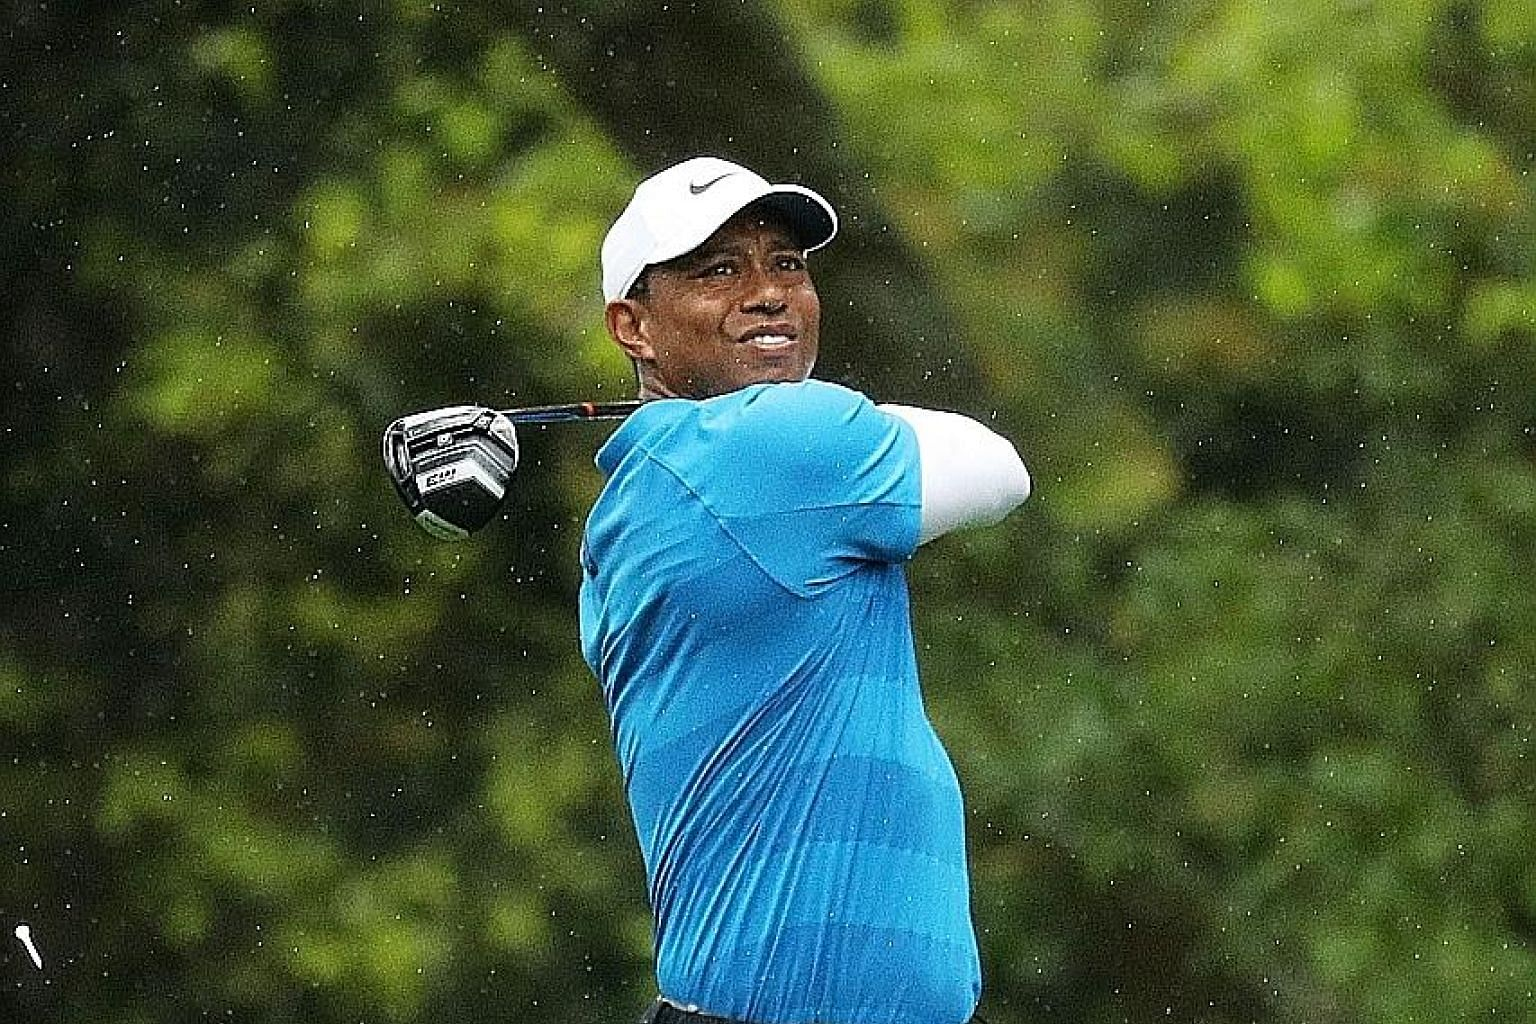 Four-time champion Tiger Woods finds himself hampered by wayward drives and poor approach shots at Augusta.